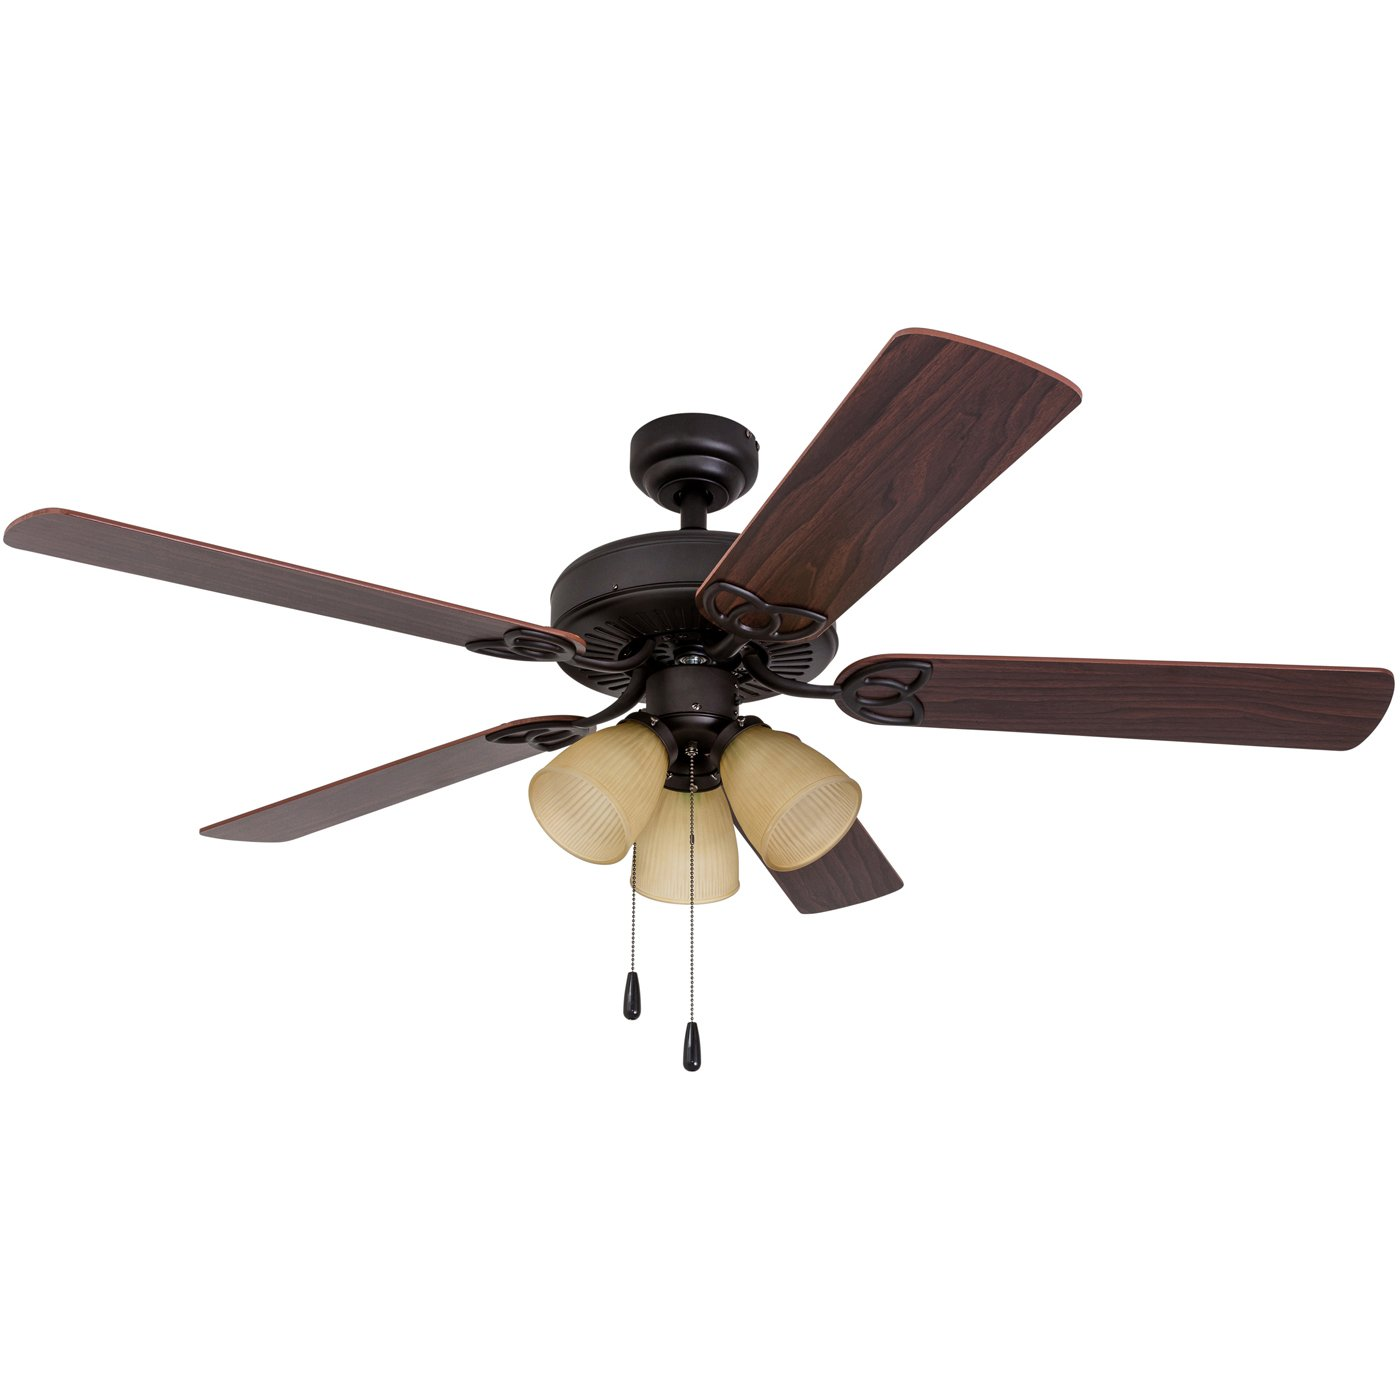 Prominence Home 80021-01 Fletcher Cove LED Ceiling Fan, 3-Light with Reversible Fan Blades, 52 inches, Bronze